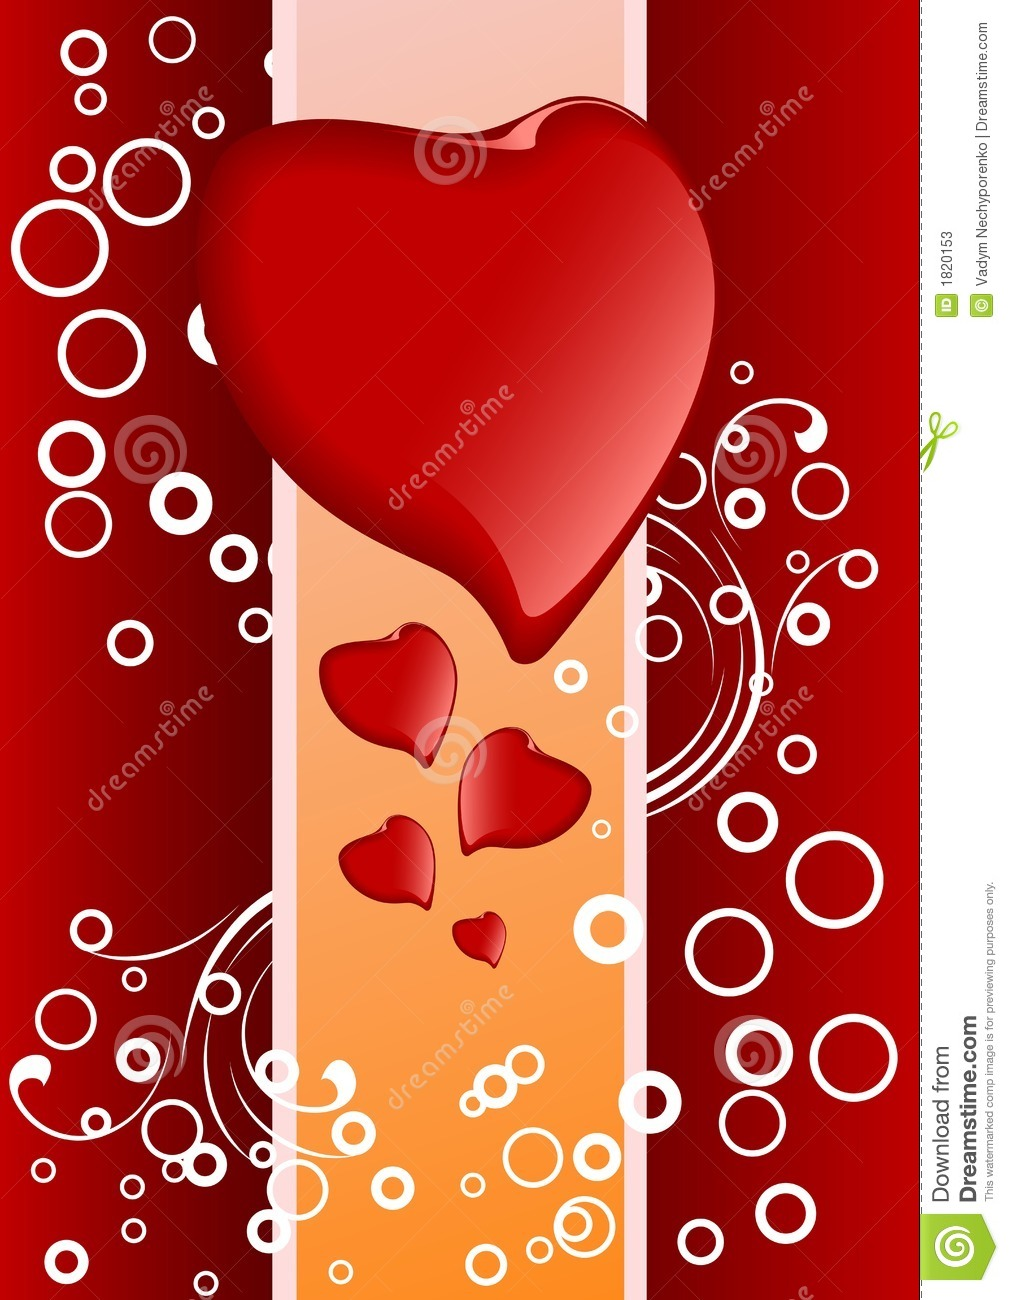 Creative Valentine greeting card with hearts and circles, vector